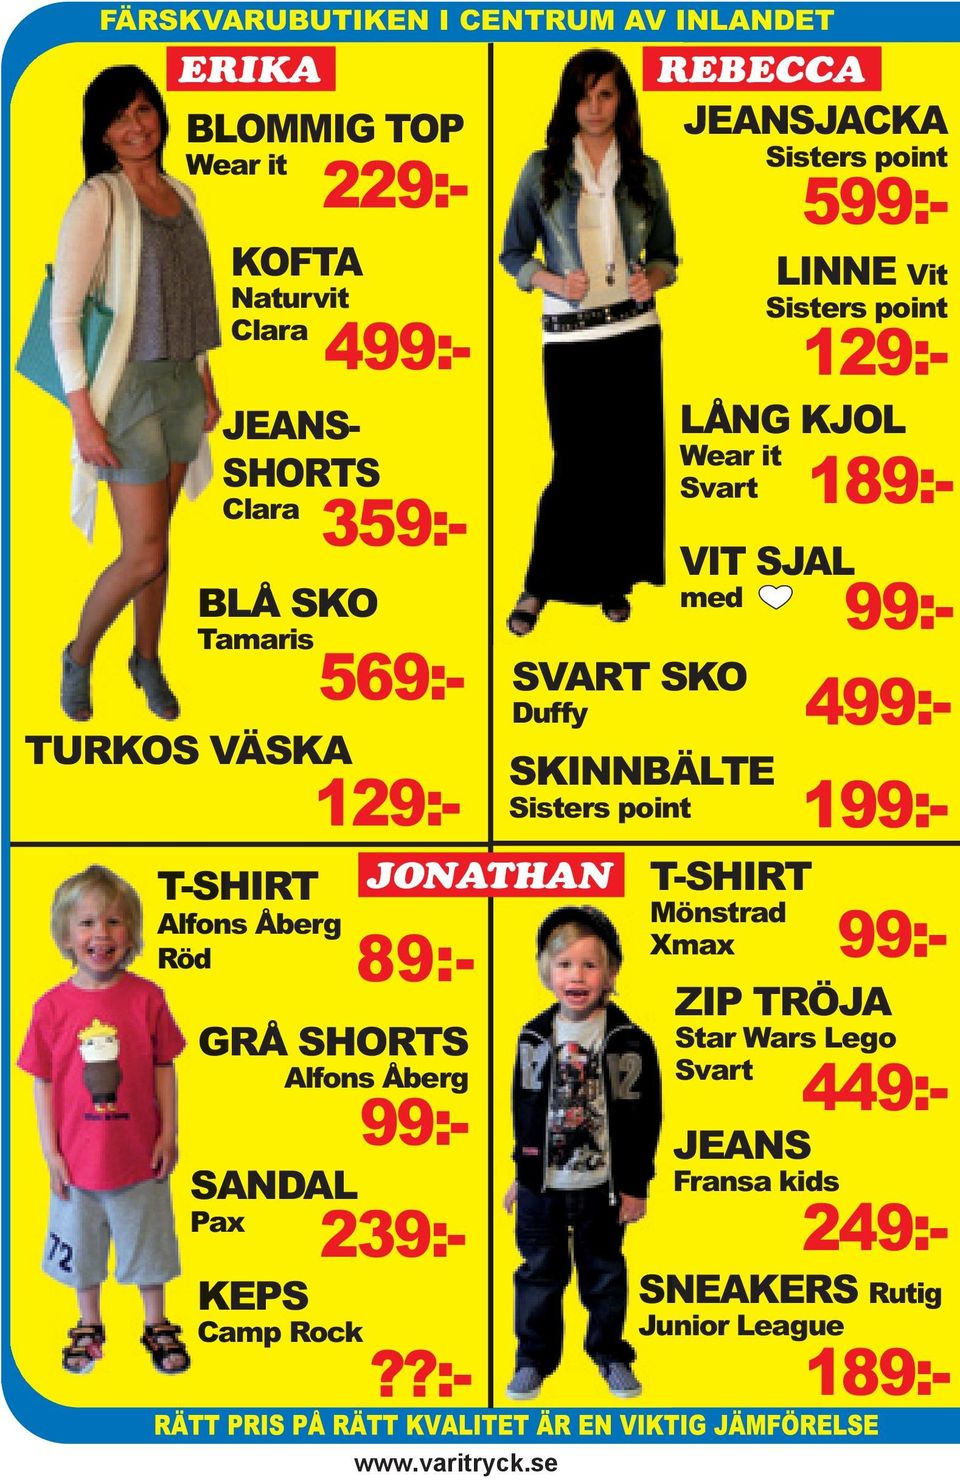 LINNE Vit Sisters point 129:- LÅNG KJOL Wear it Svart SVART SKO Duffy VIT SJAL med SKINNBÄLTE Sisters point T-SHIRT Mönstrad Xmax ZIP TRÖJA